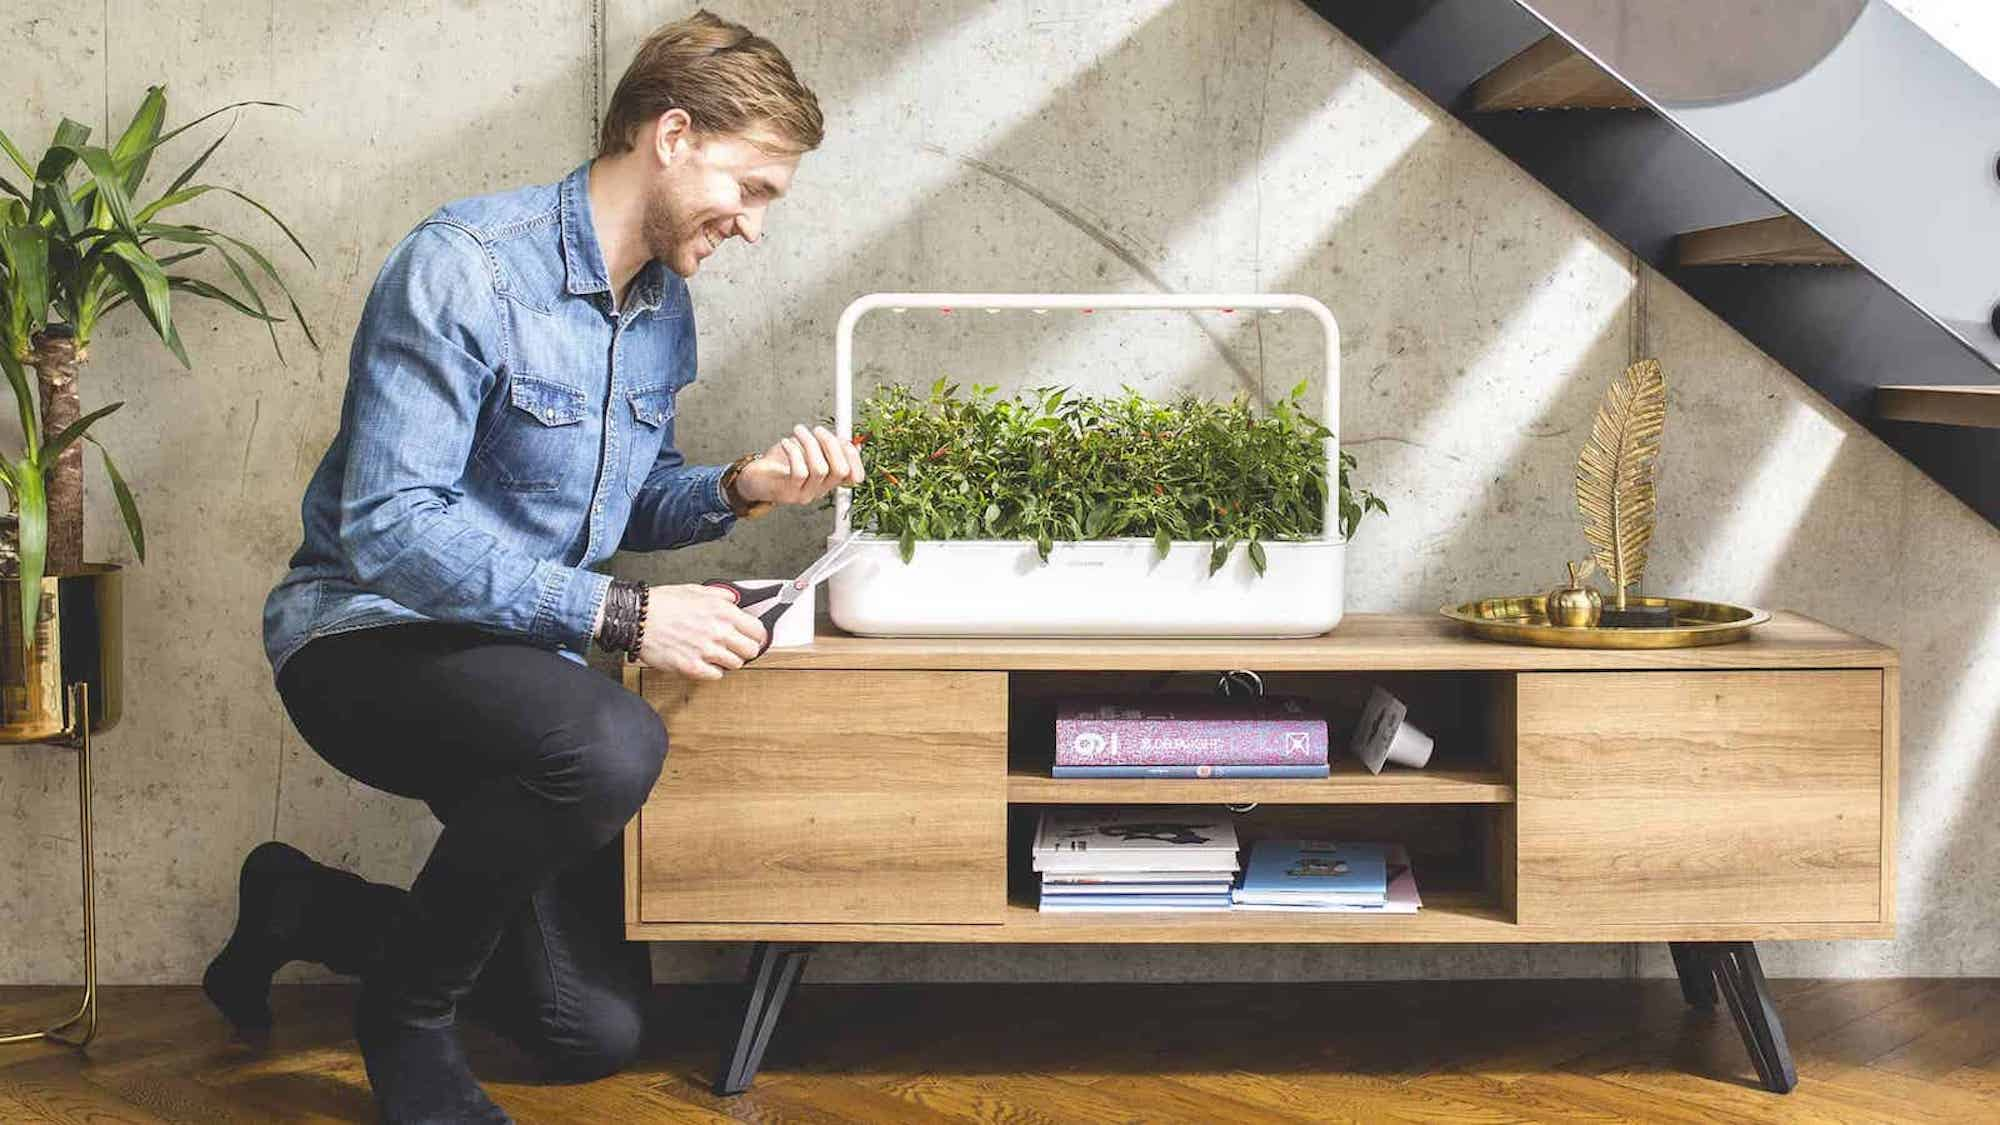 Why you should buy a smart kitchen garden this spring